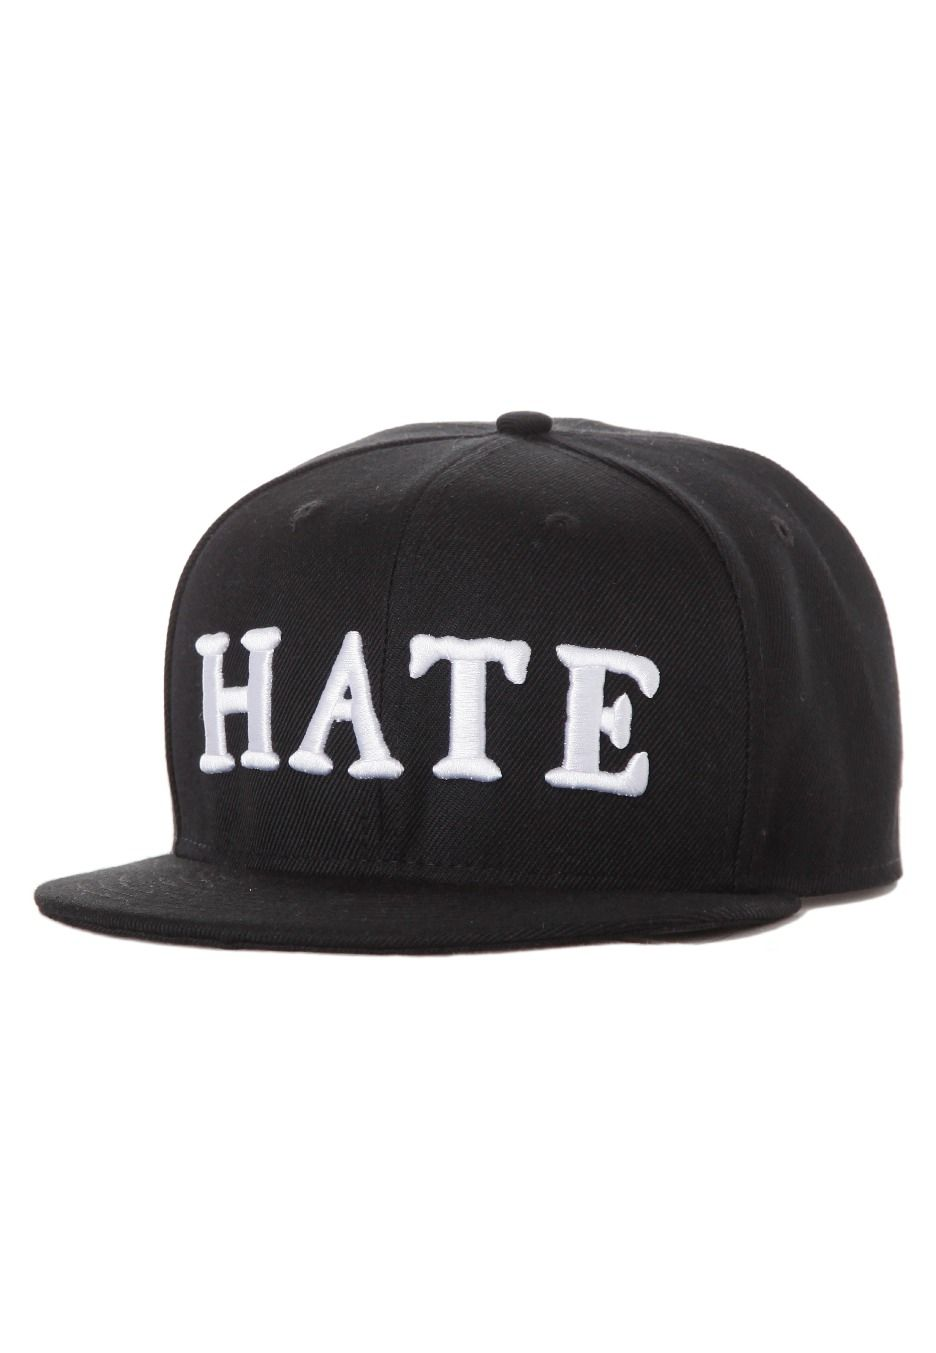 668174baee7 Thy Art Is Murder - Hate - Cap - Official Merch Store - Impericon.com UK